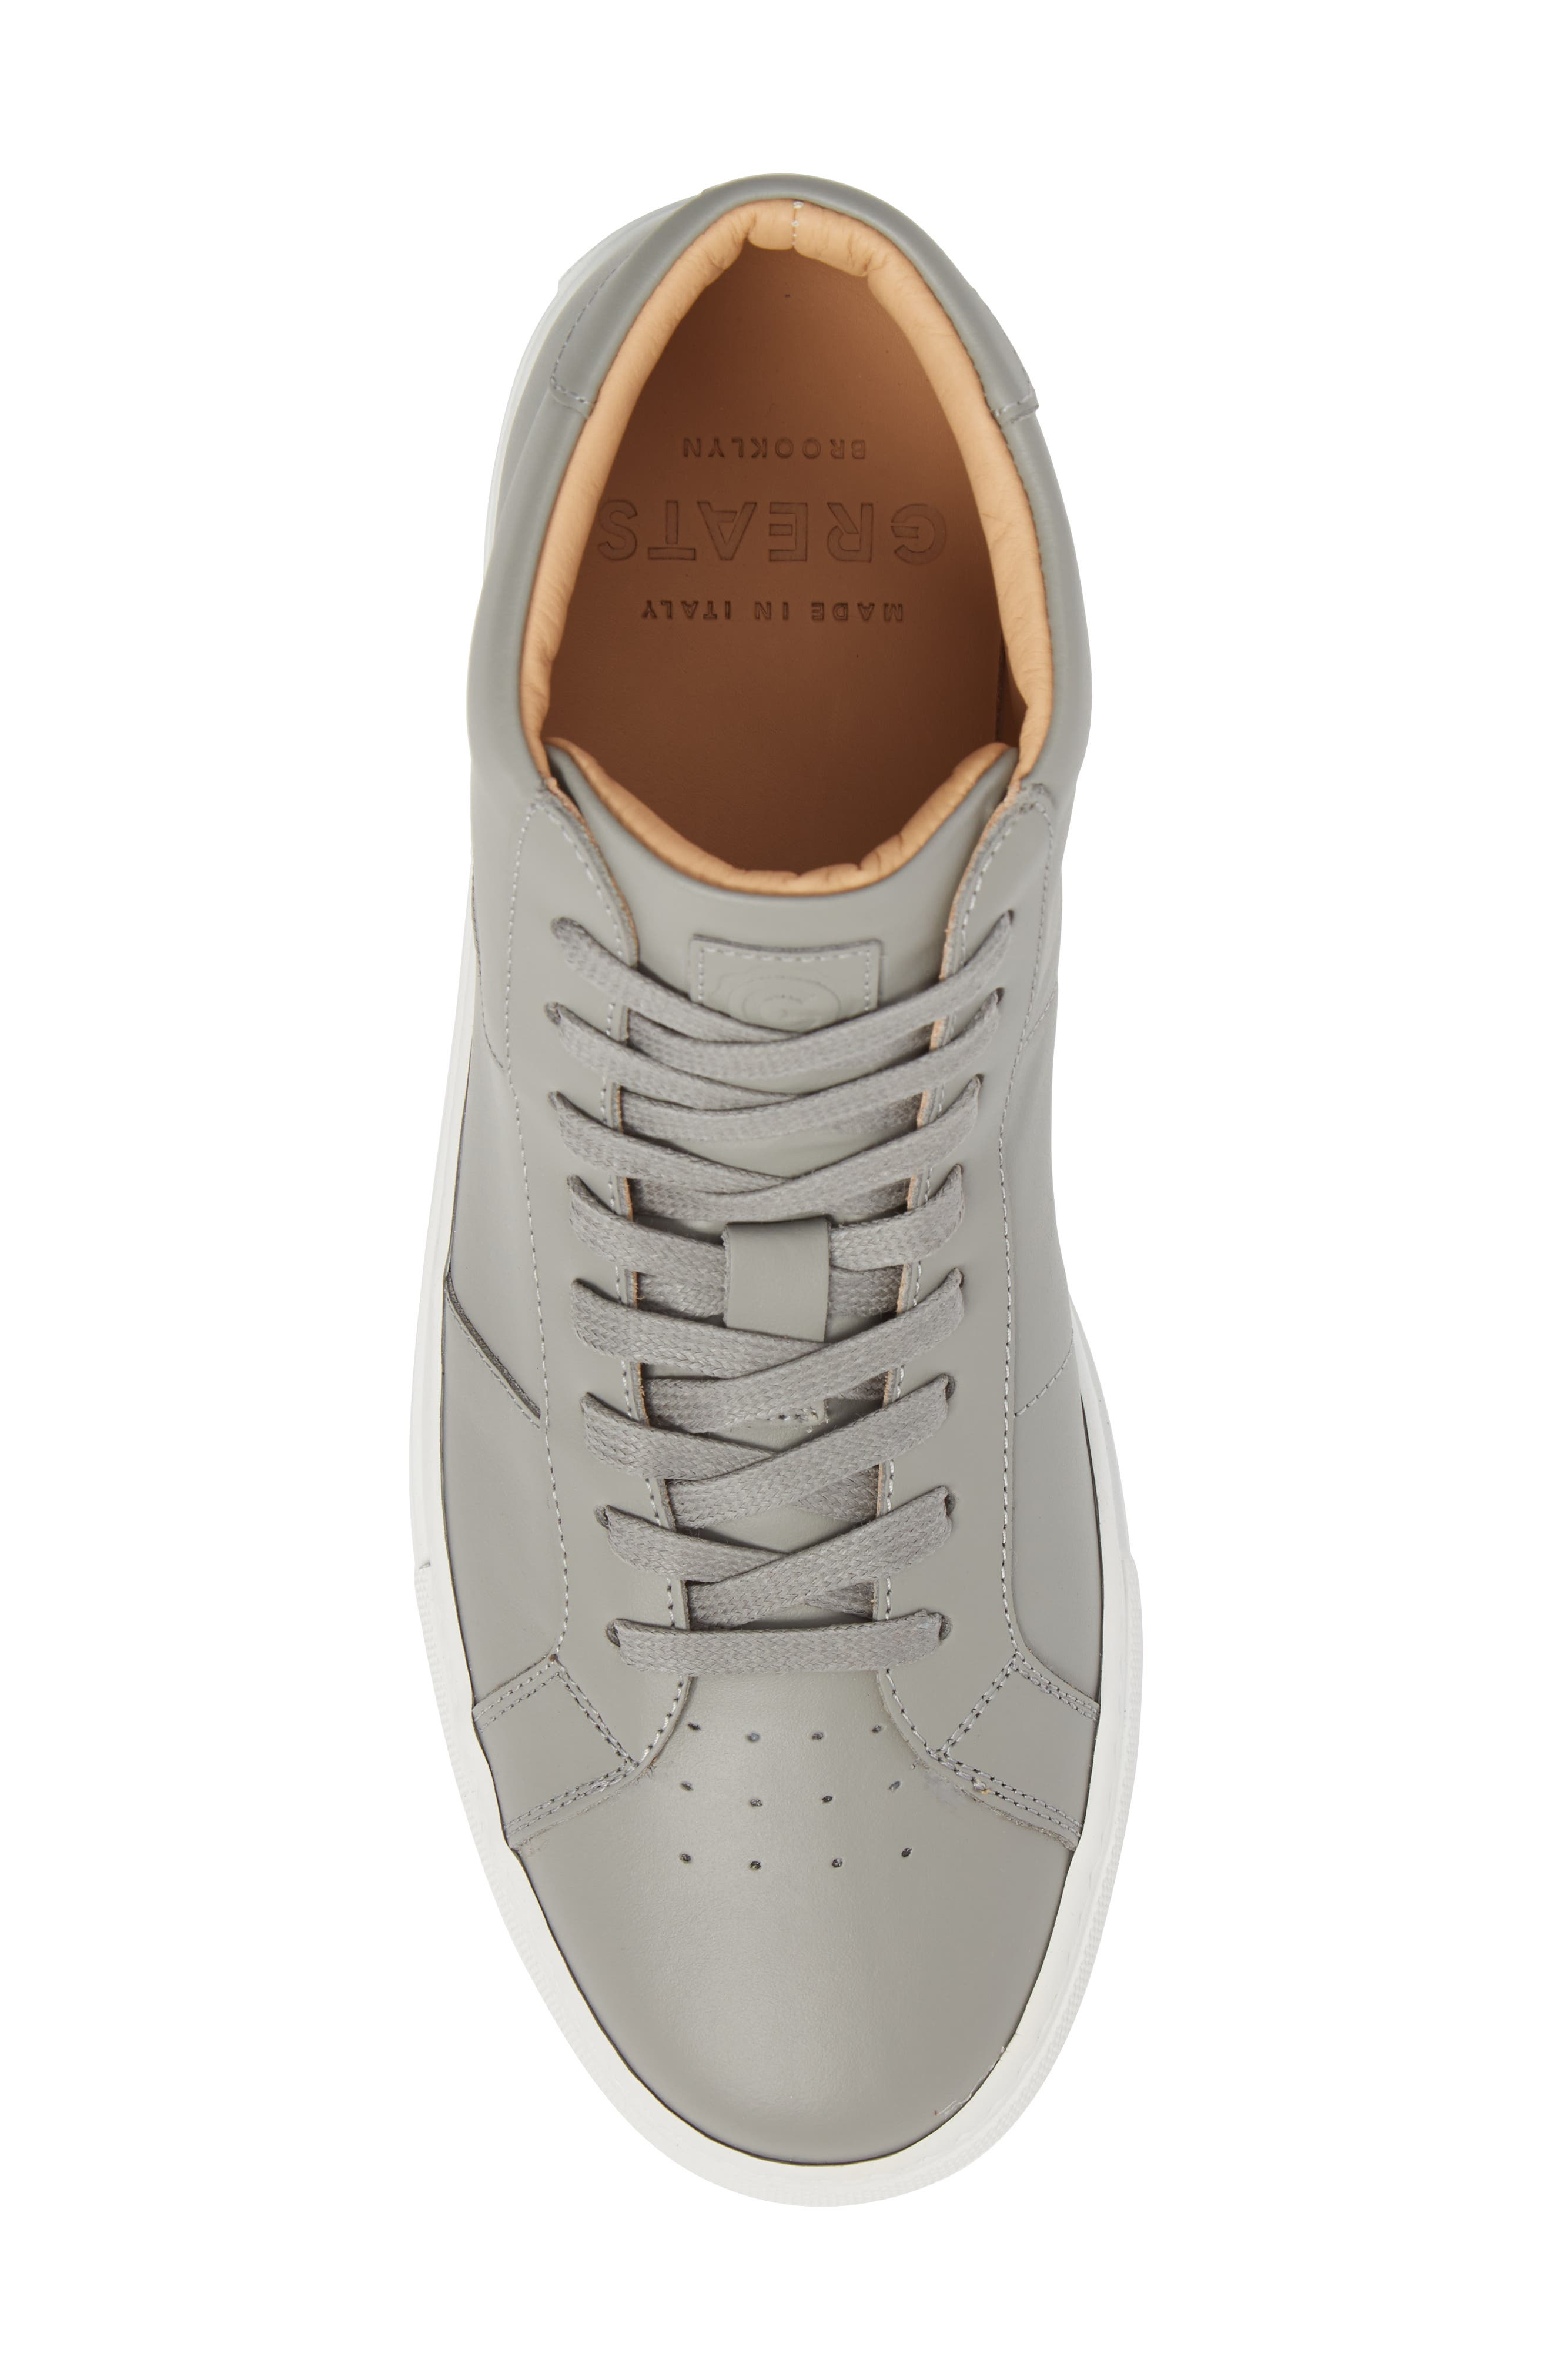 Royale High Top Sneaker,                             Alternate thumbnail 5, color,                             Grey Leather